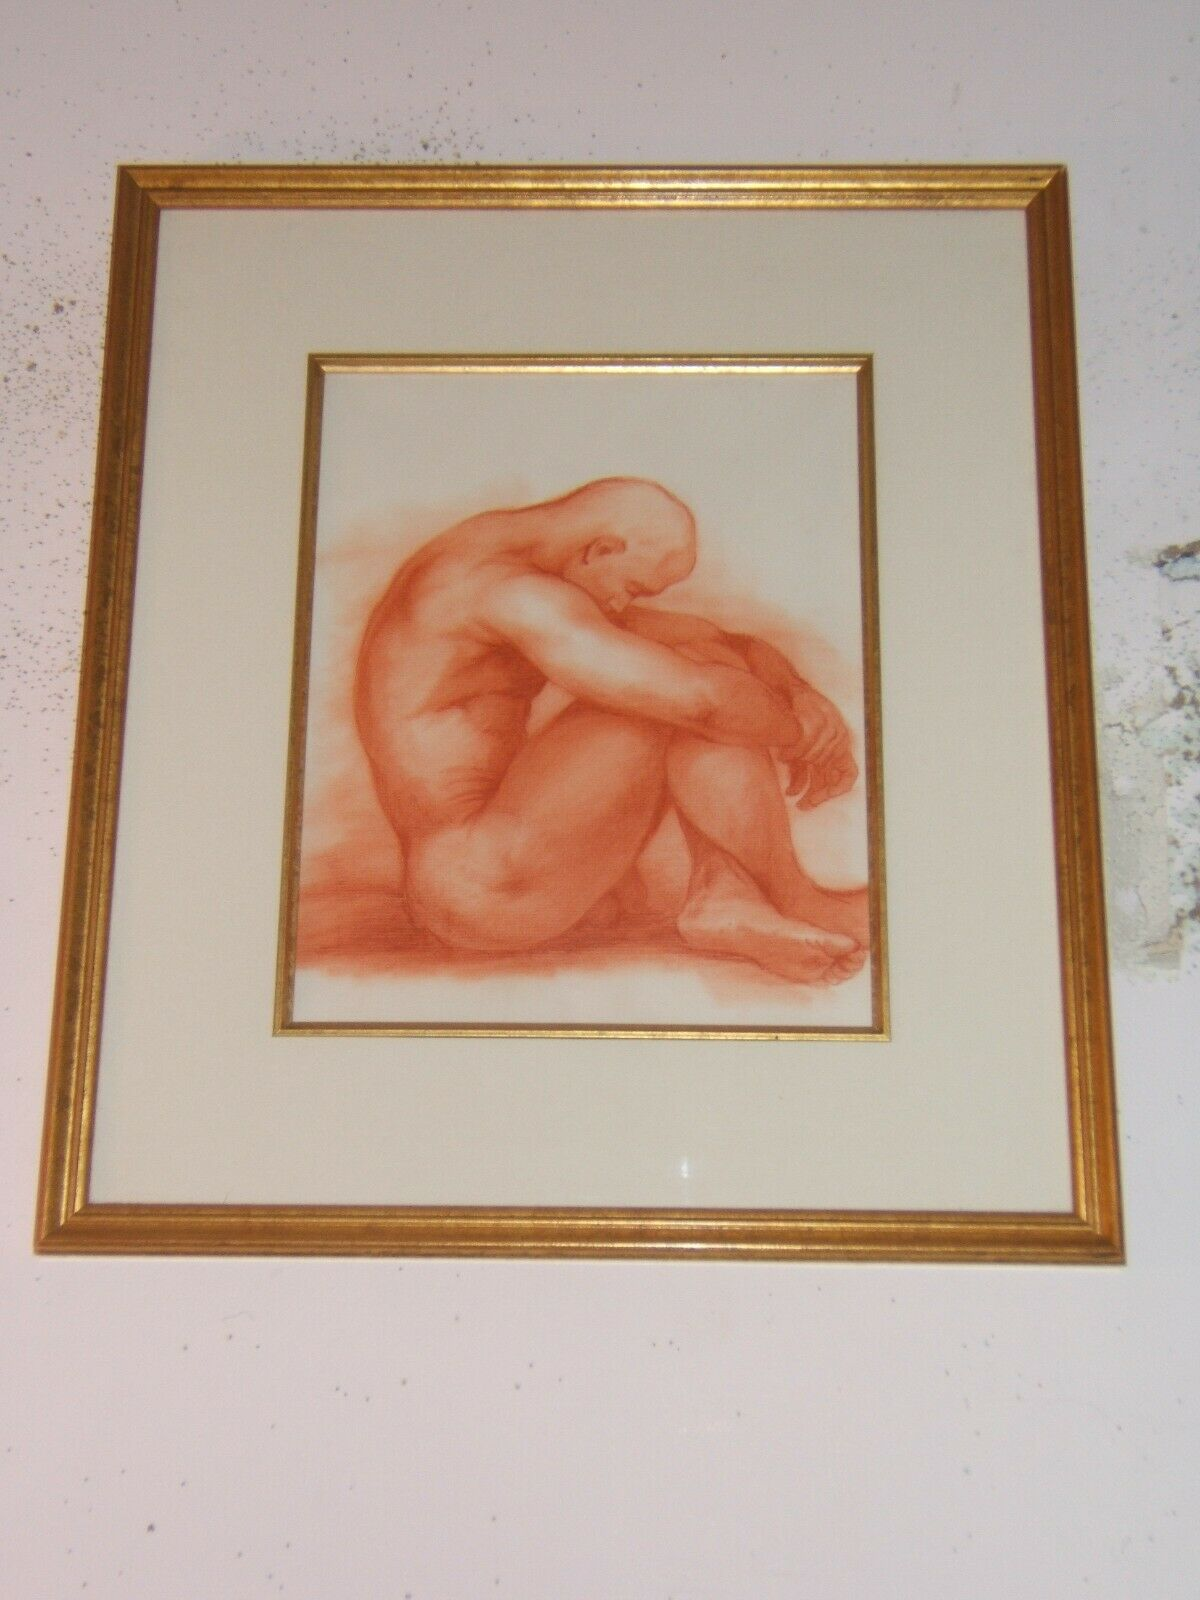 Original Art, Male Nude, Lawrence Schumaker, Framed, Prisma Pencil on Paper